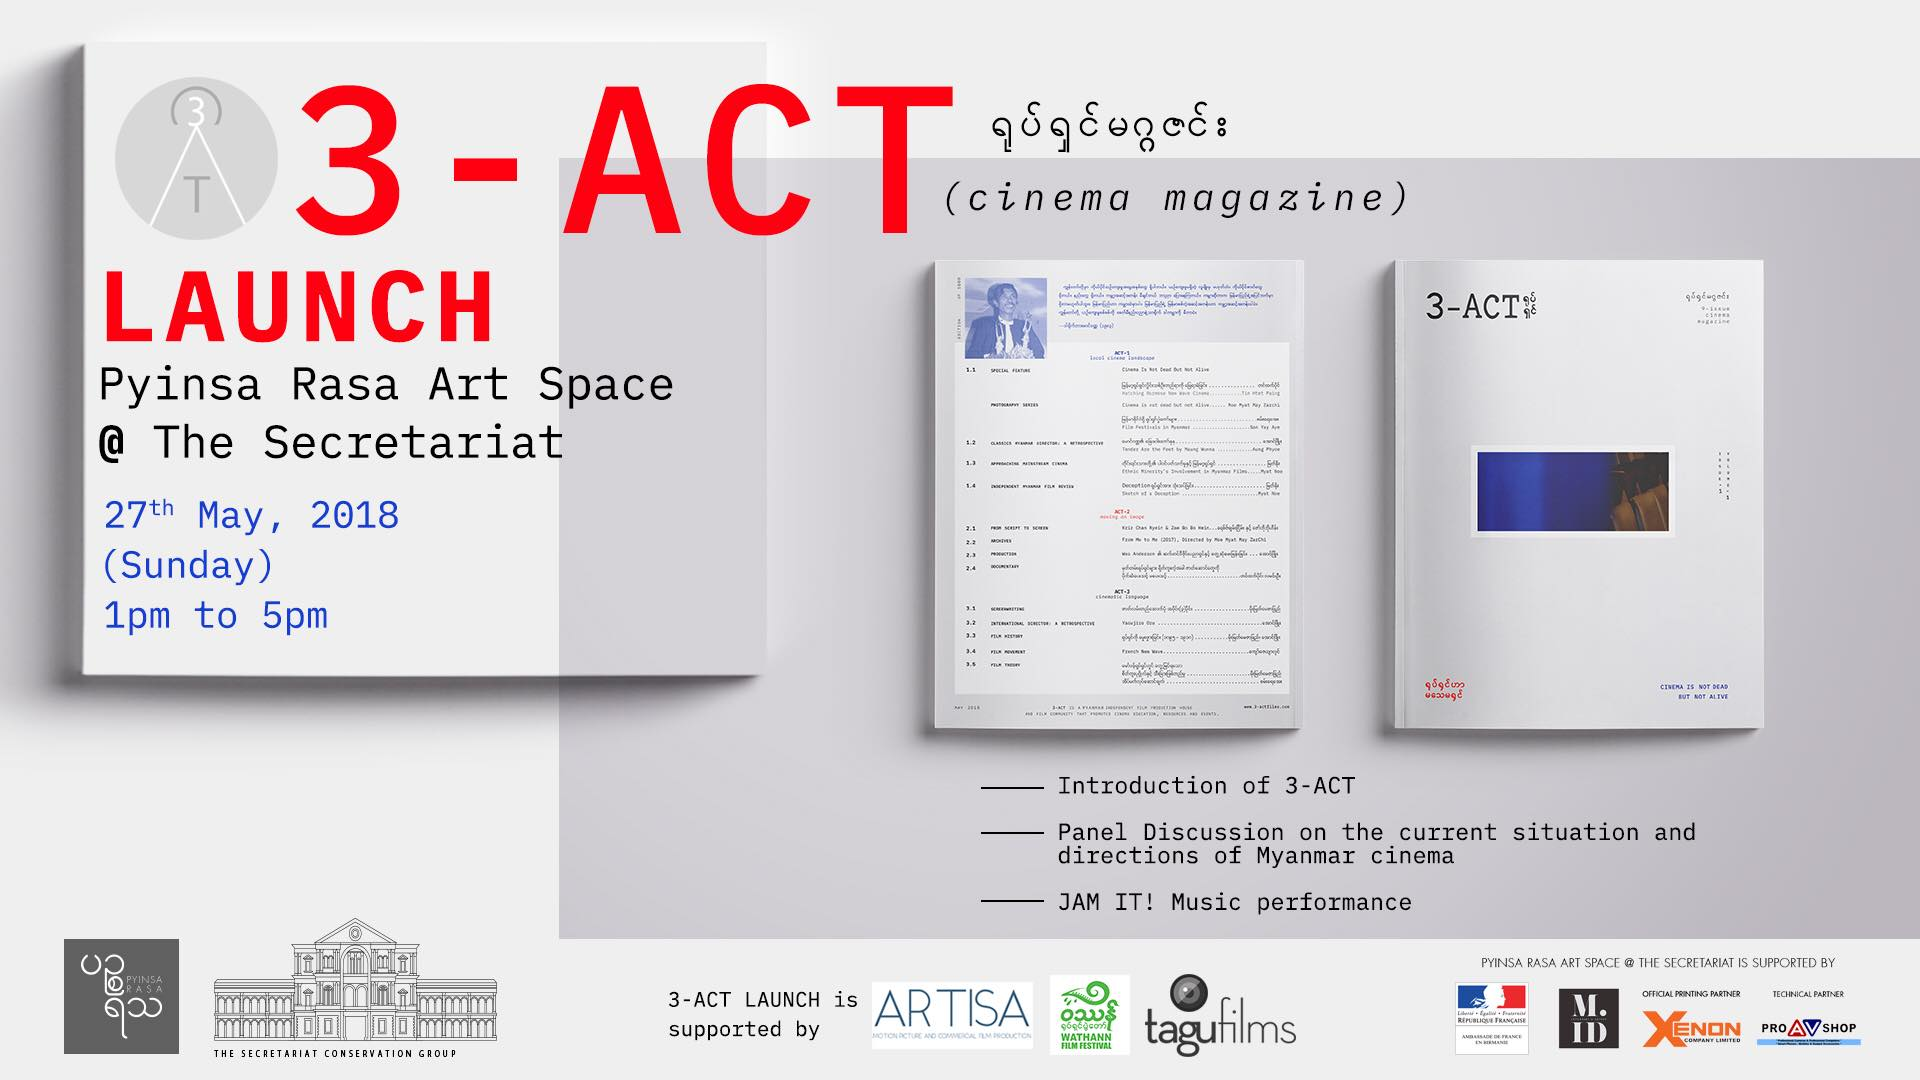 3-ACT Cinema Magazine Launch at Pyinsa Rasa Art Space @ The Secretariat